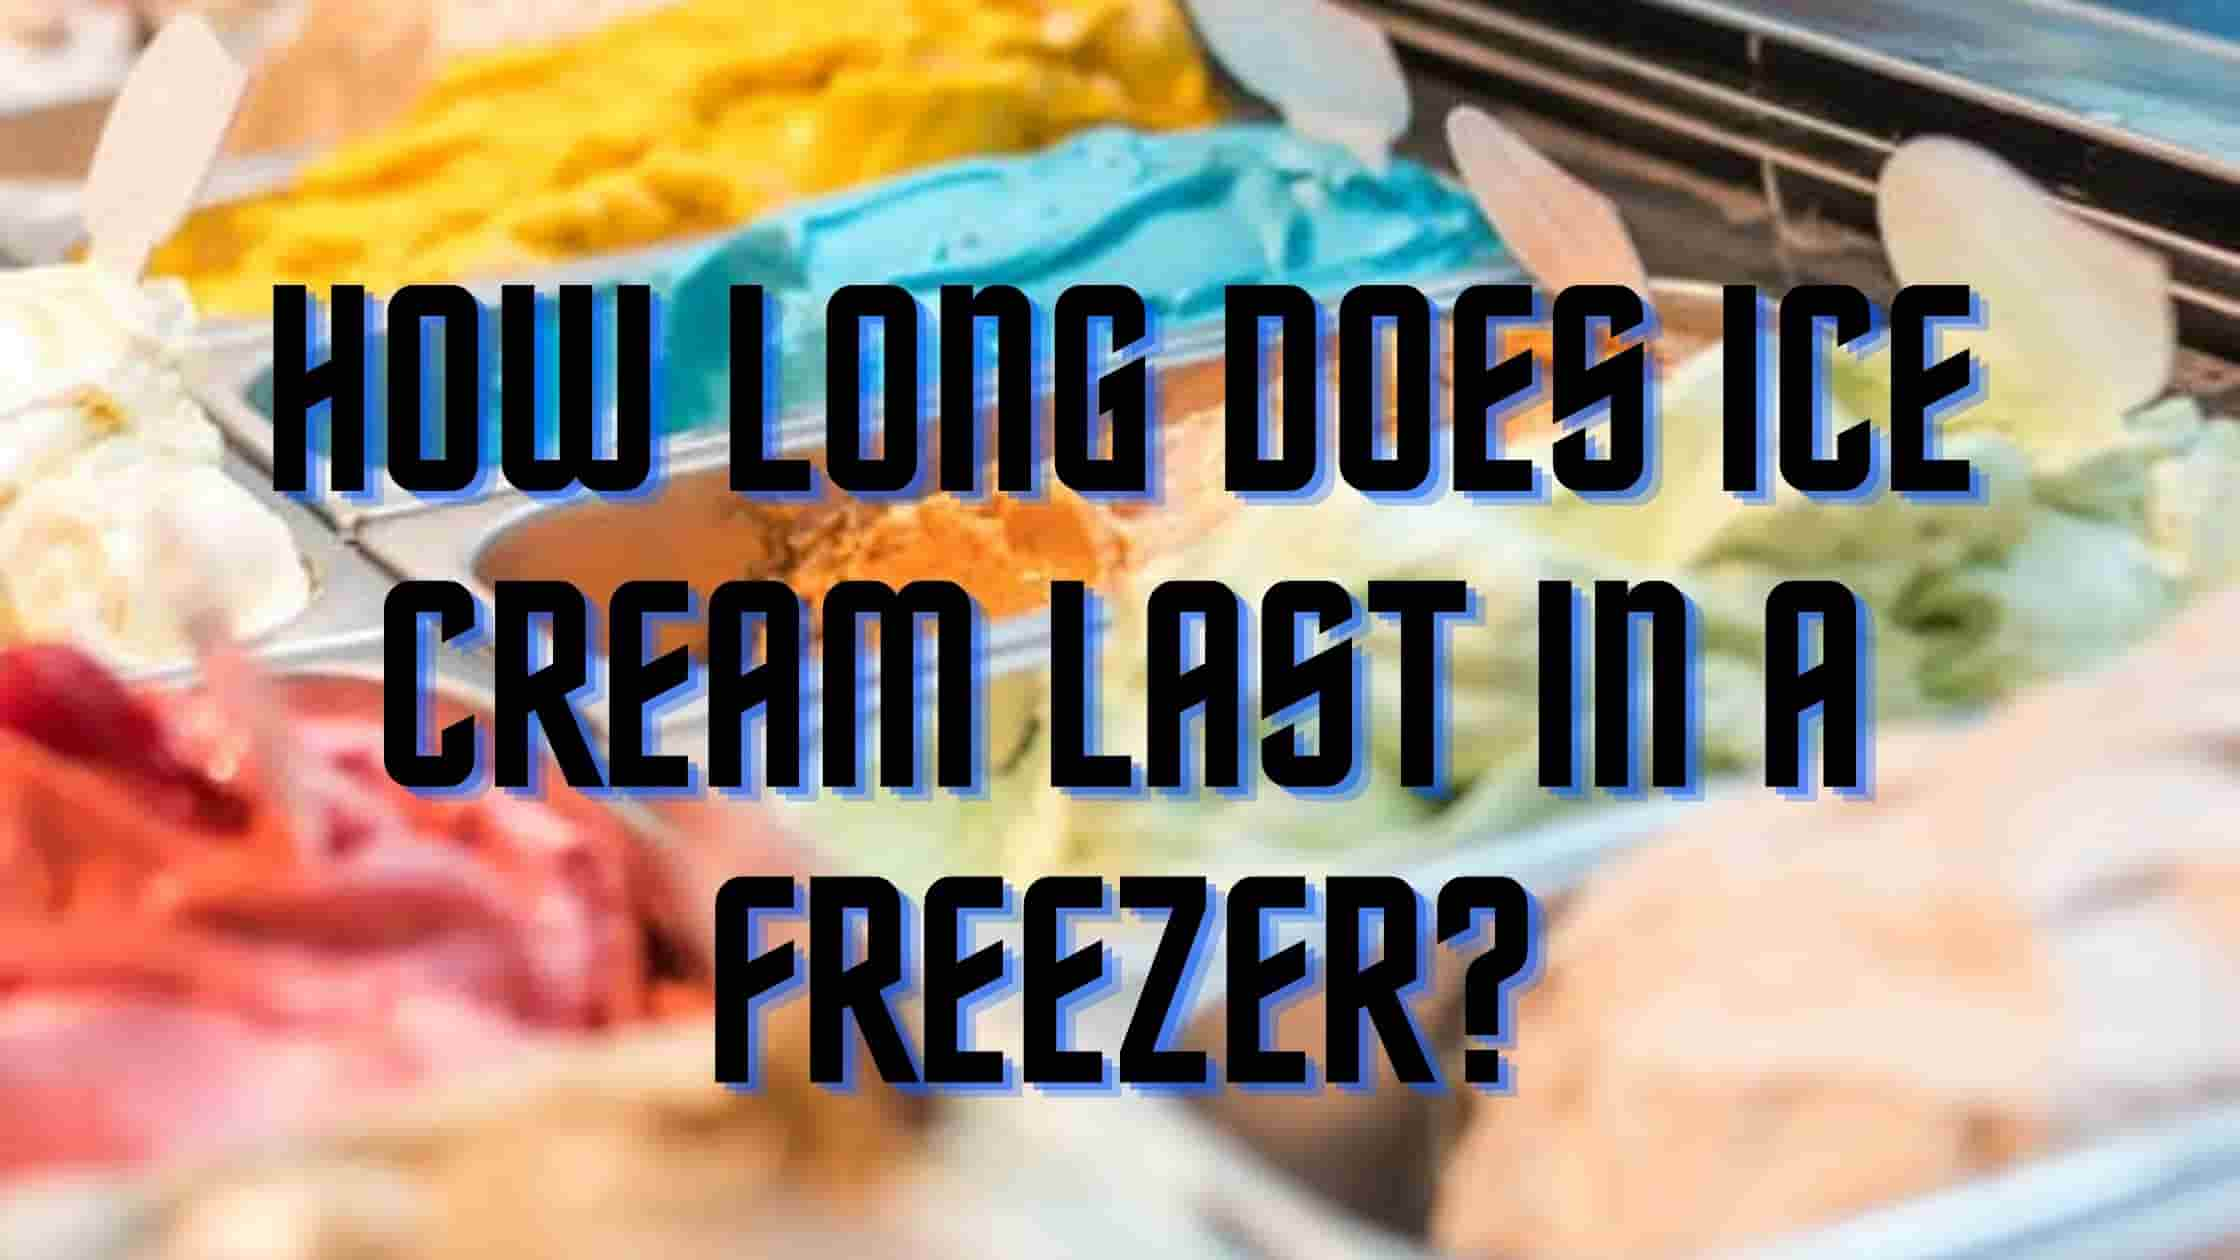 How long does ice cream last in the freezer